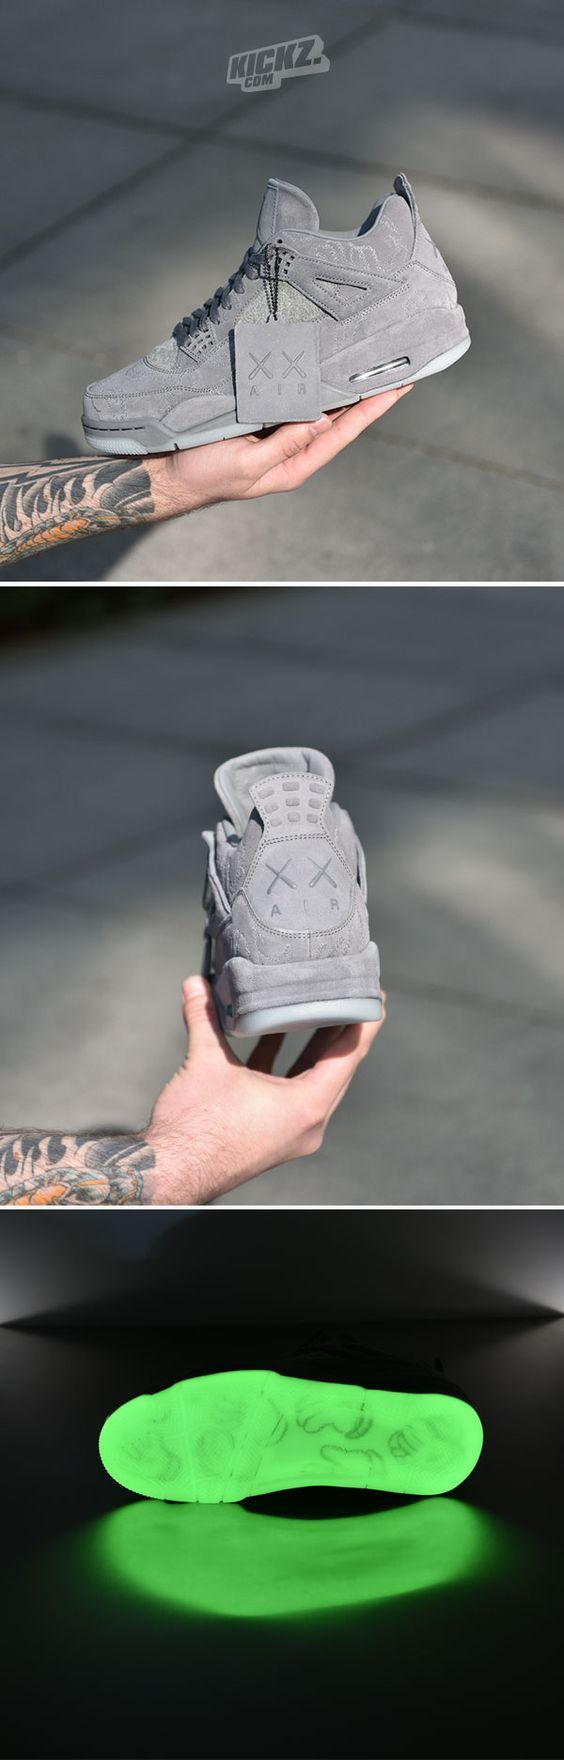 96021e37e1f4 Air Jordan 4 x KAWS. Pinnacle Release. Cream of the crop. Absolute ...